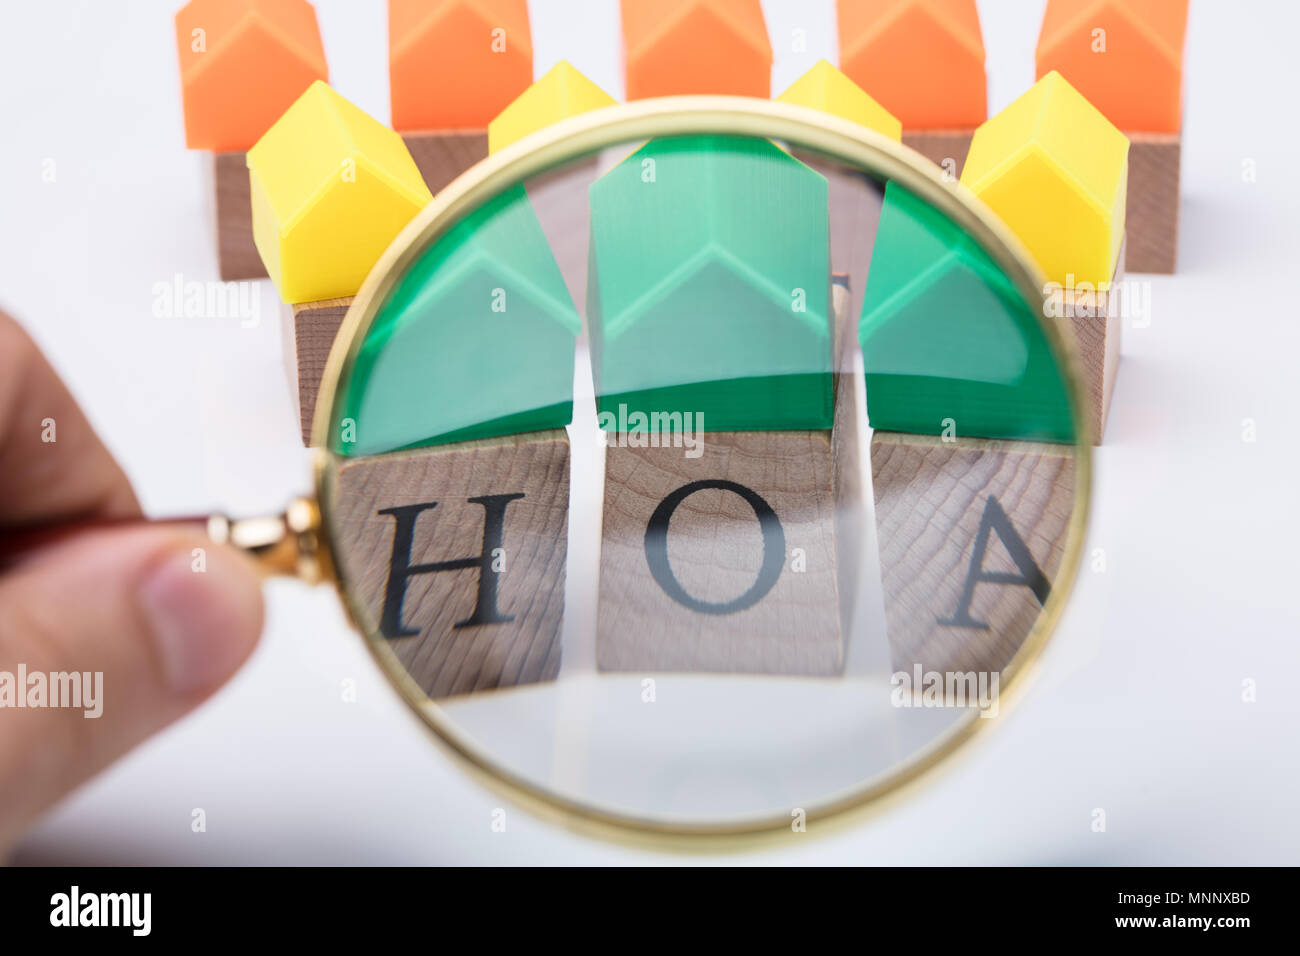 Green House Model Over Homeowner Association Wooden Blocks Seen Through A Person Holding Magnifying Glass - Stock Image